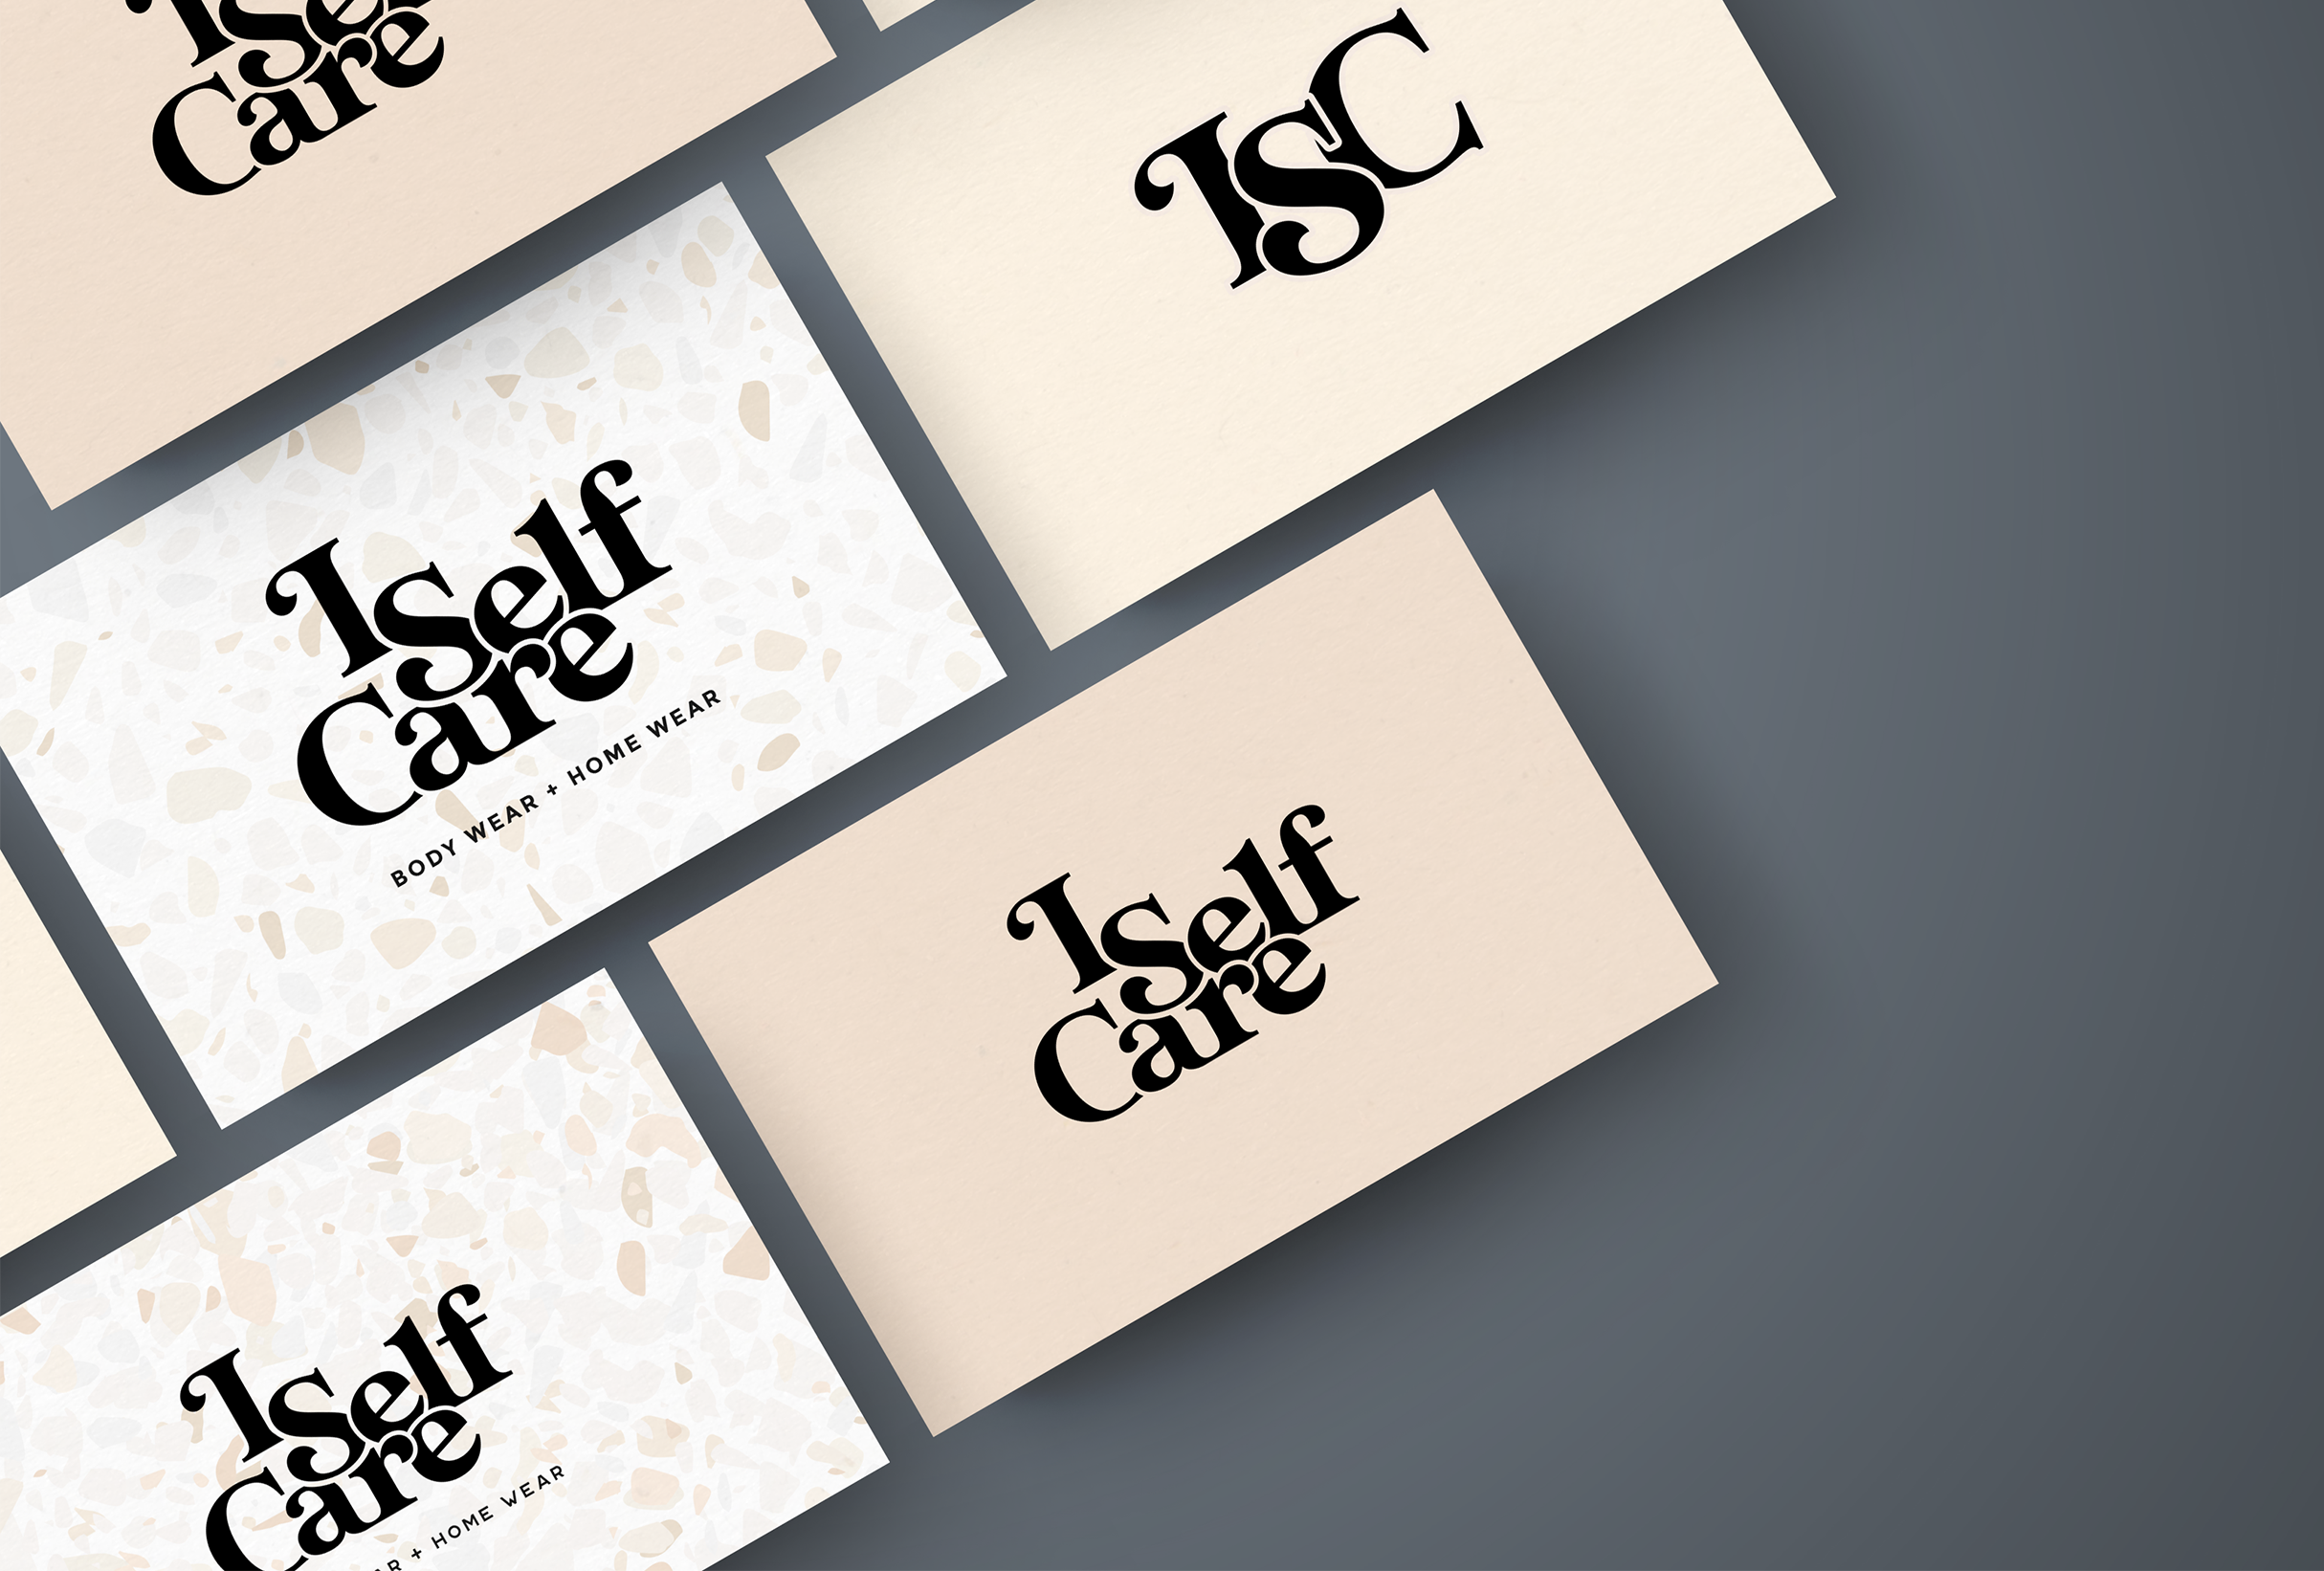 Business card design for I Self Care, a body care and home wear line focused on selling candles and soaps that are non-toxic and derived from plants - designed by Wiltshire-based graphic designer, Kaye Huett